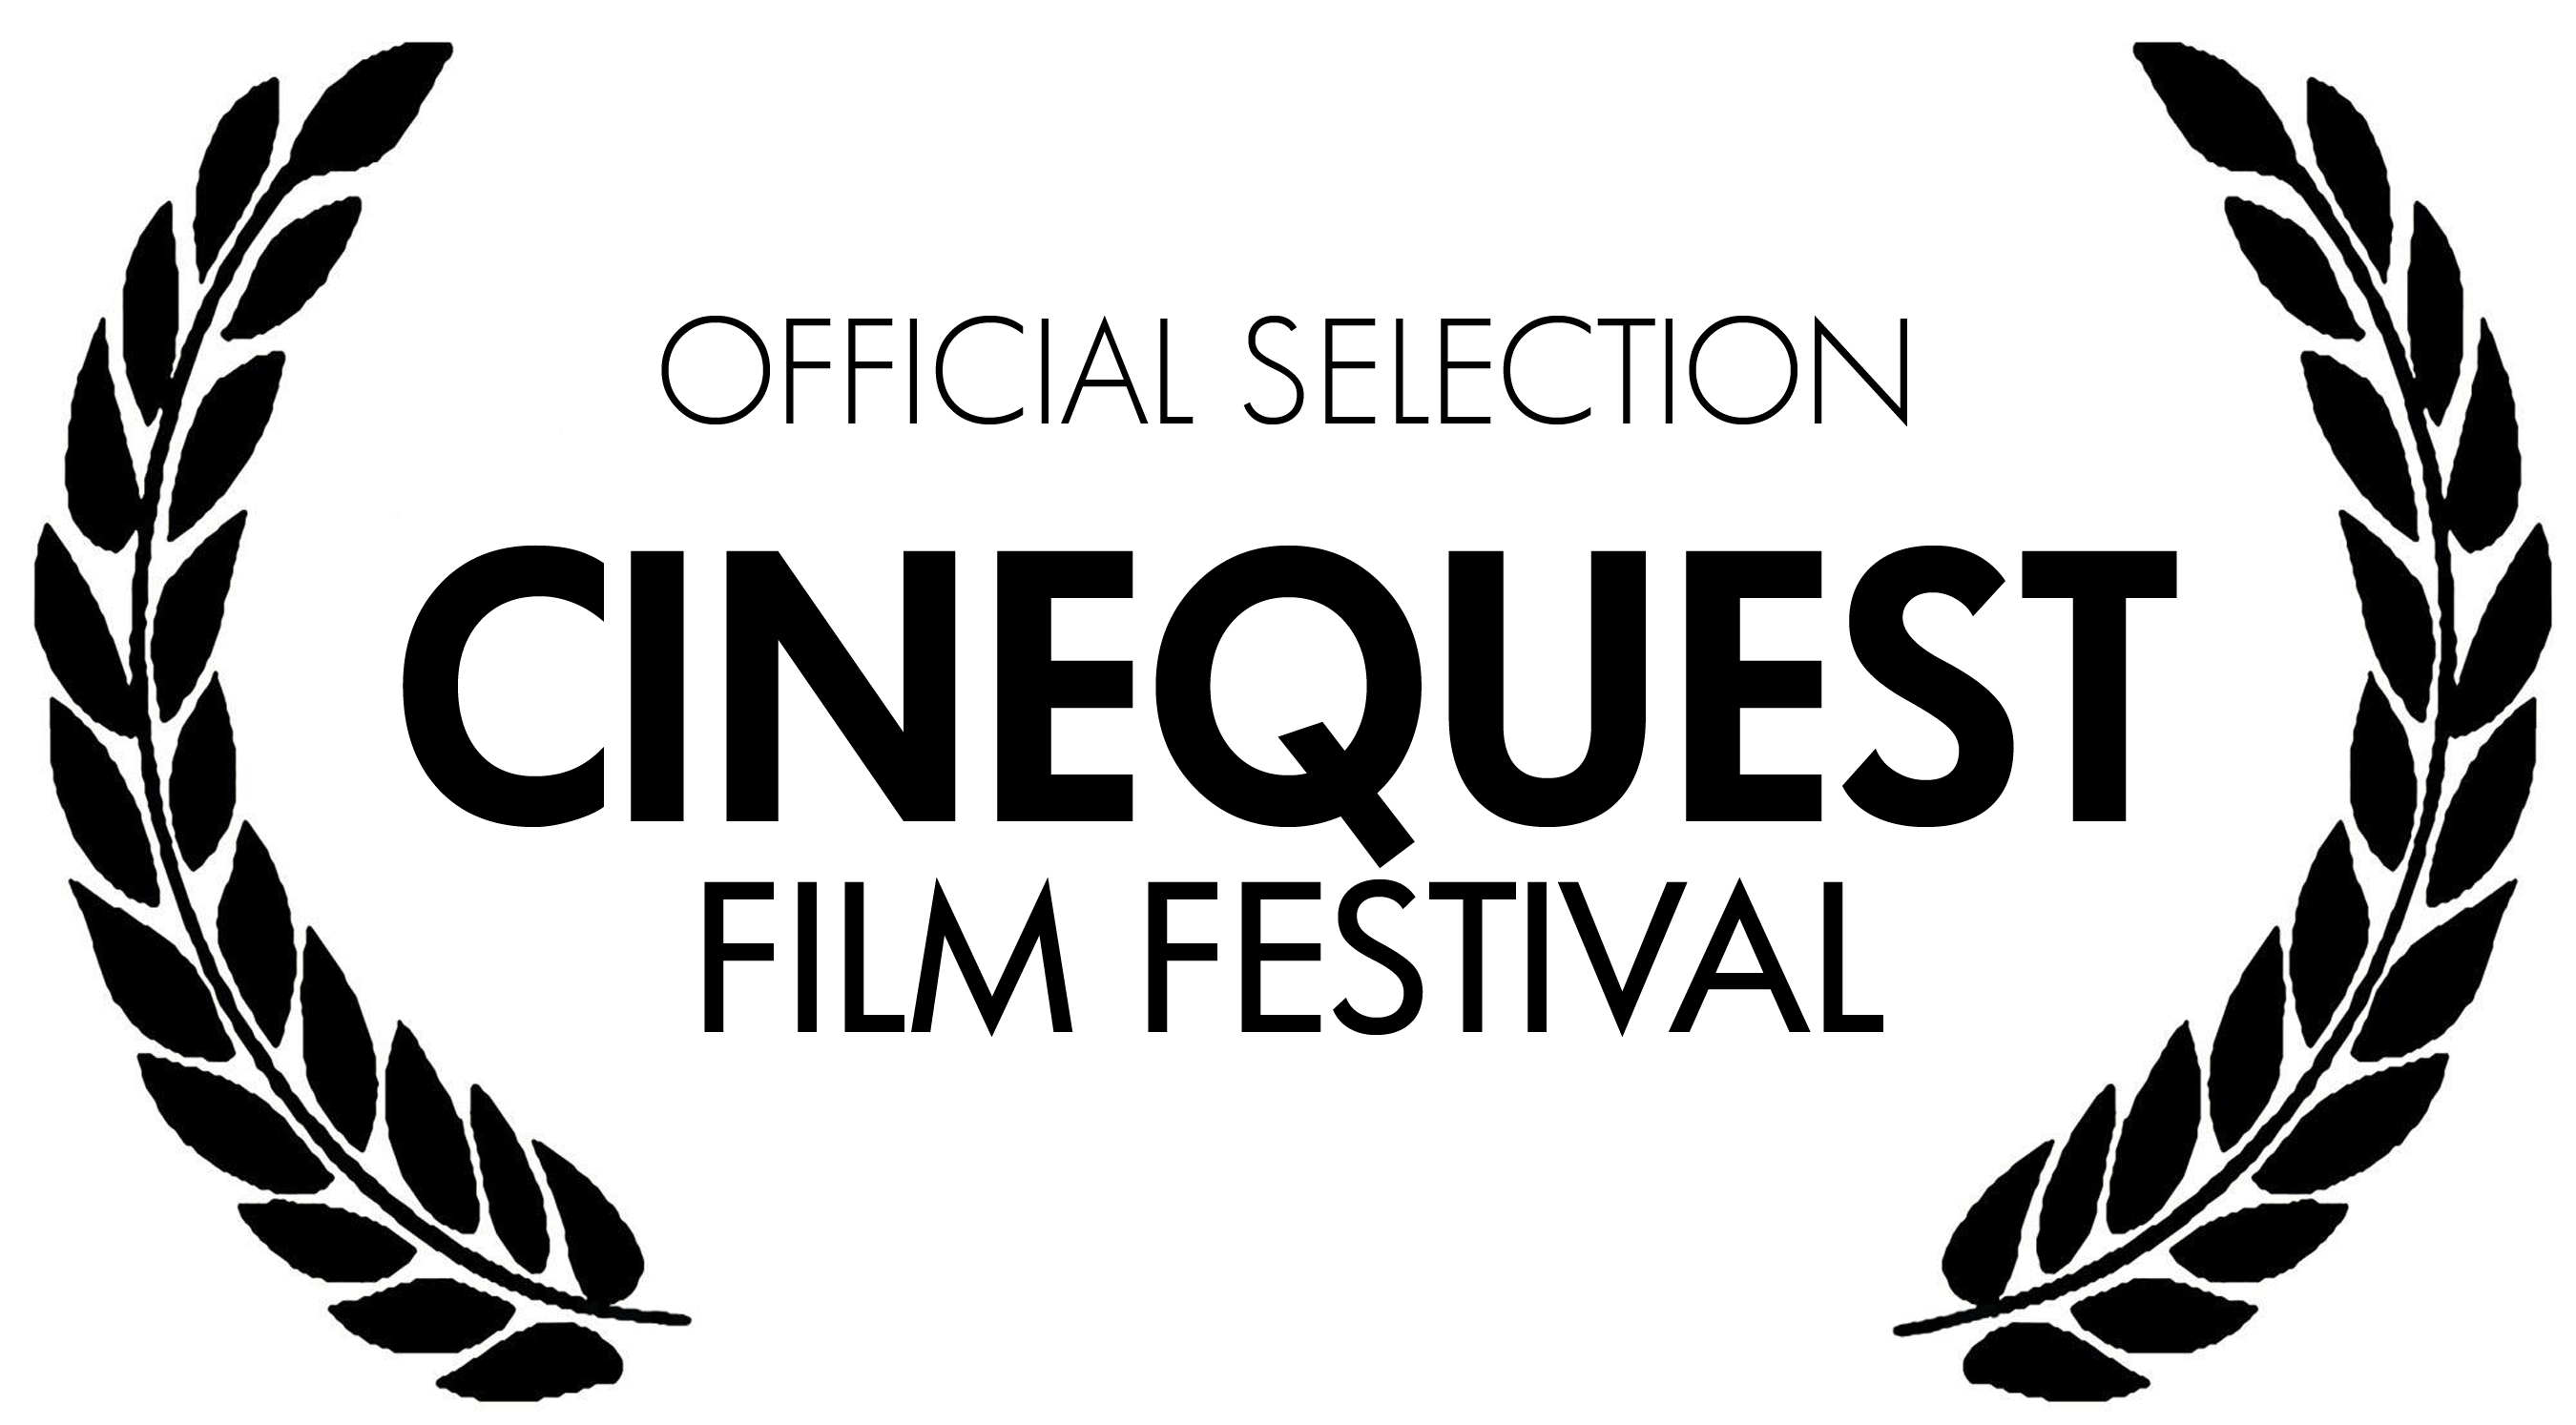 official selection Cinequest